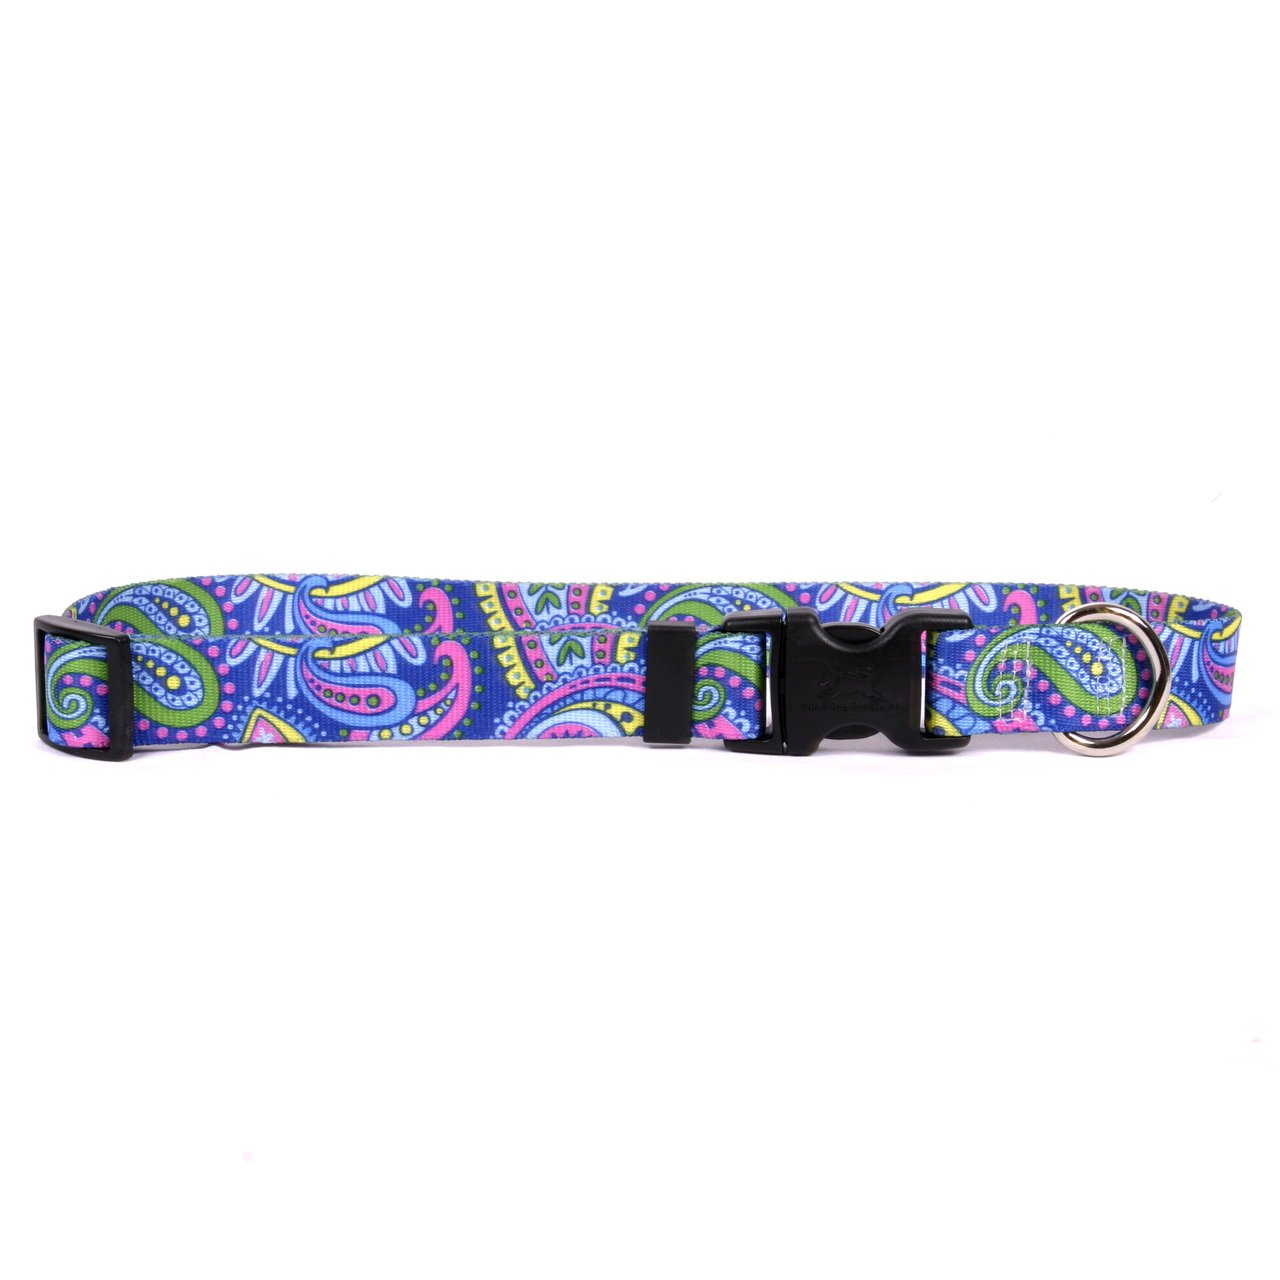 Yellow Dog Design Paisley Power Dog Collar, X-Small-3/8 wide and fits neck sizes 8 to 12''